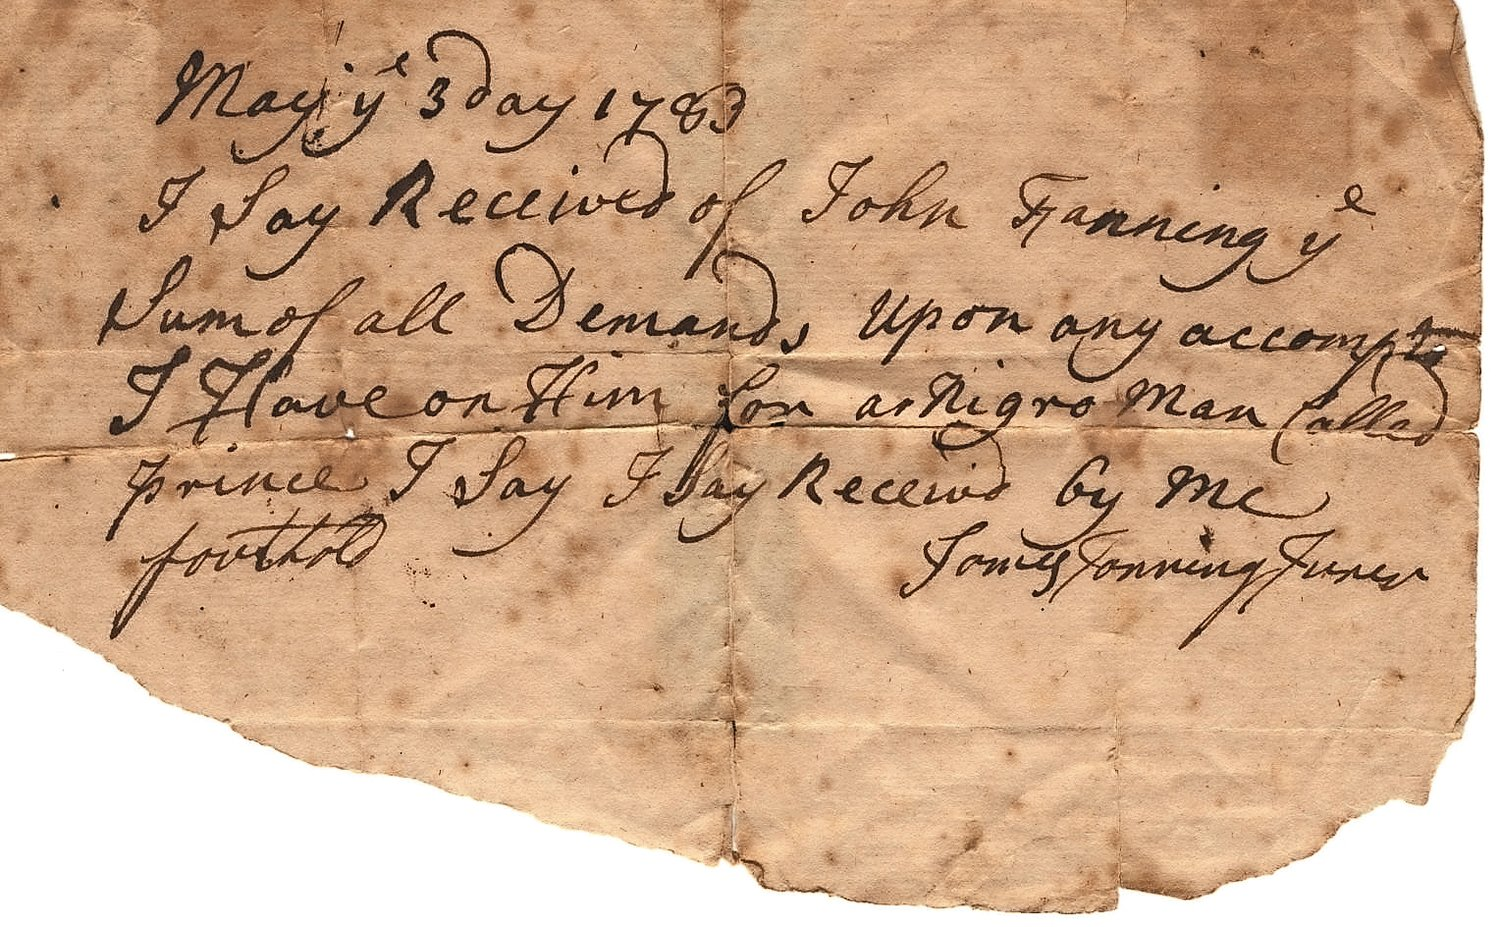 A receipt for the sale of a slave on Long Island in 1783